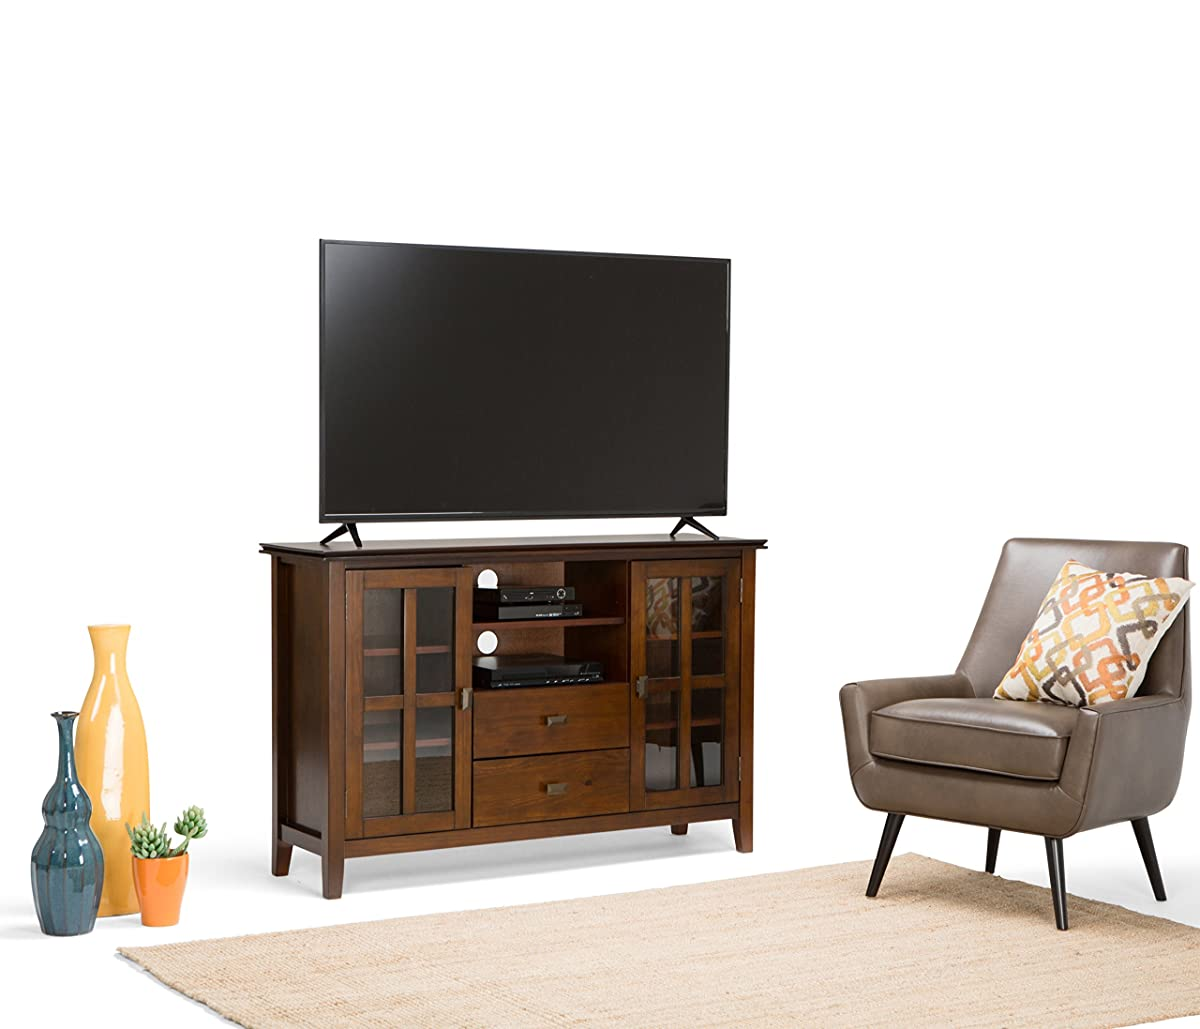 "Simpli Home Artisan TV Media Stand for TVs up to 60"", Medium Auburn Brown"